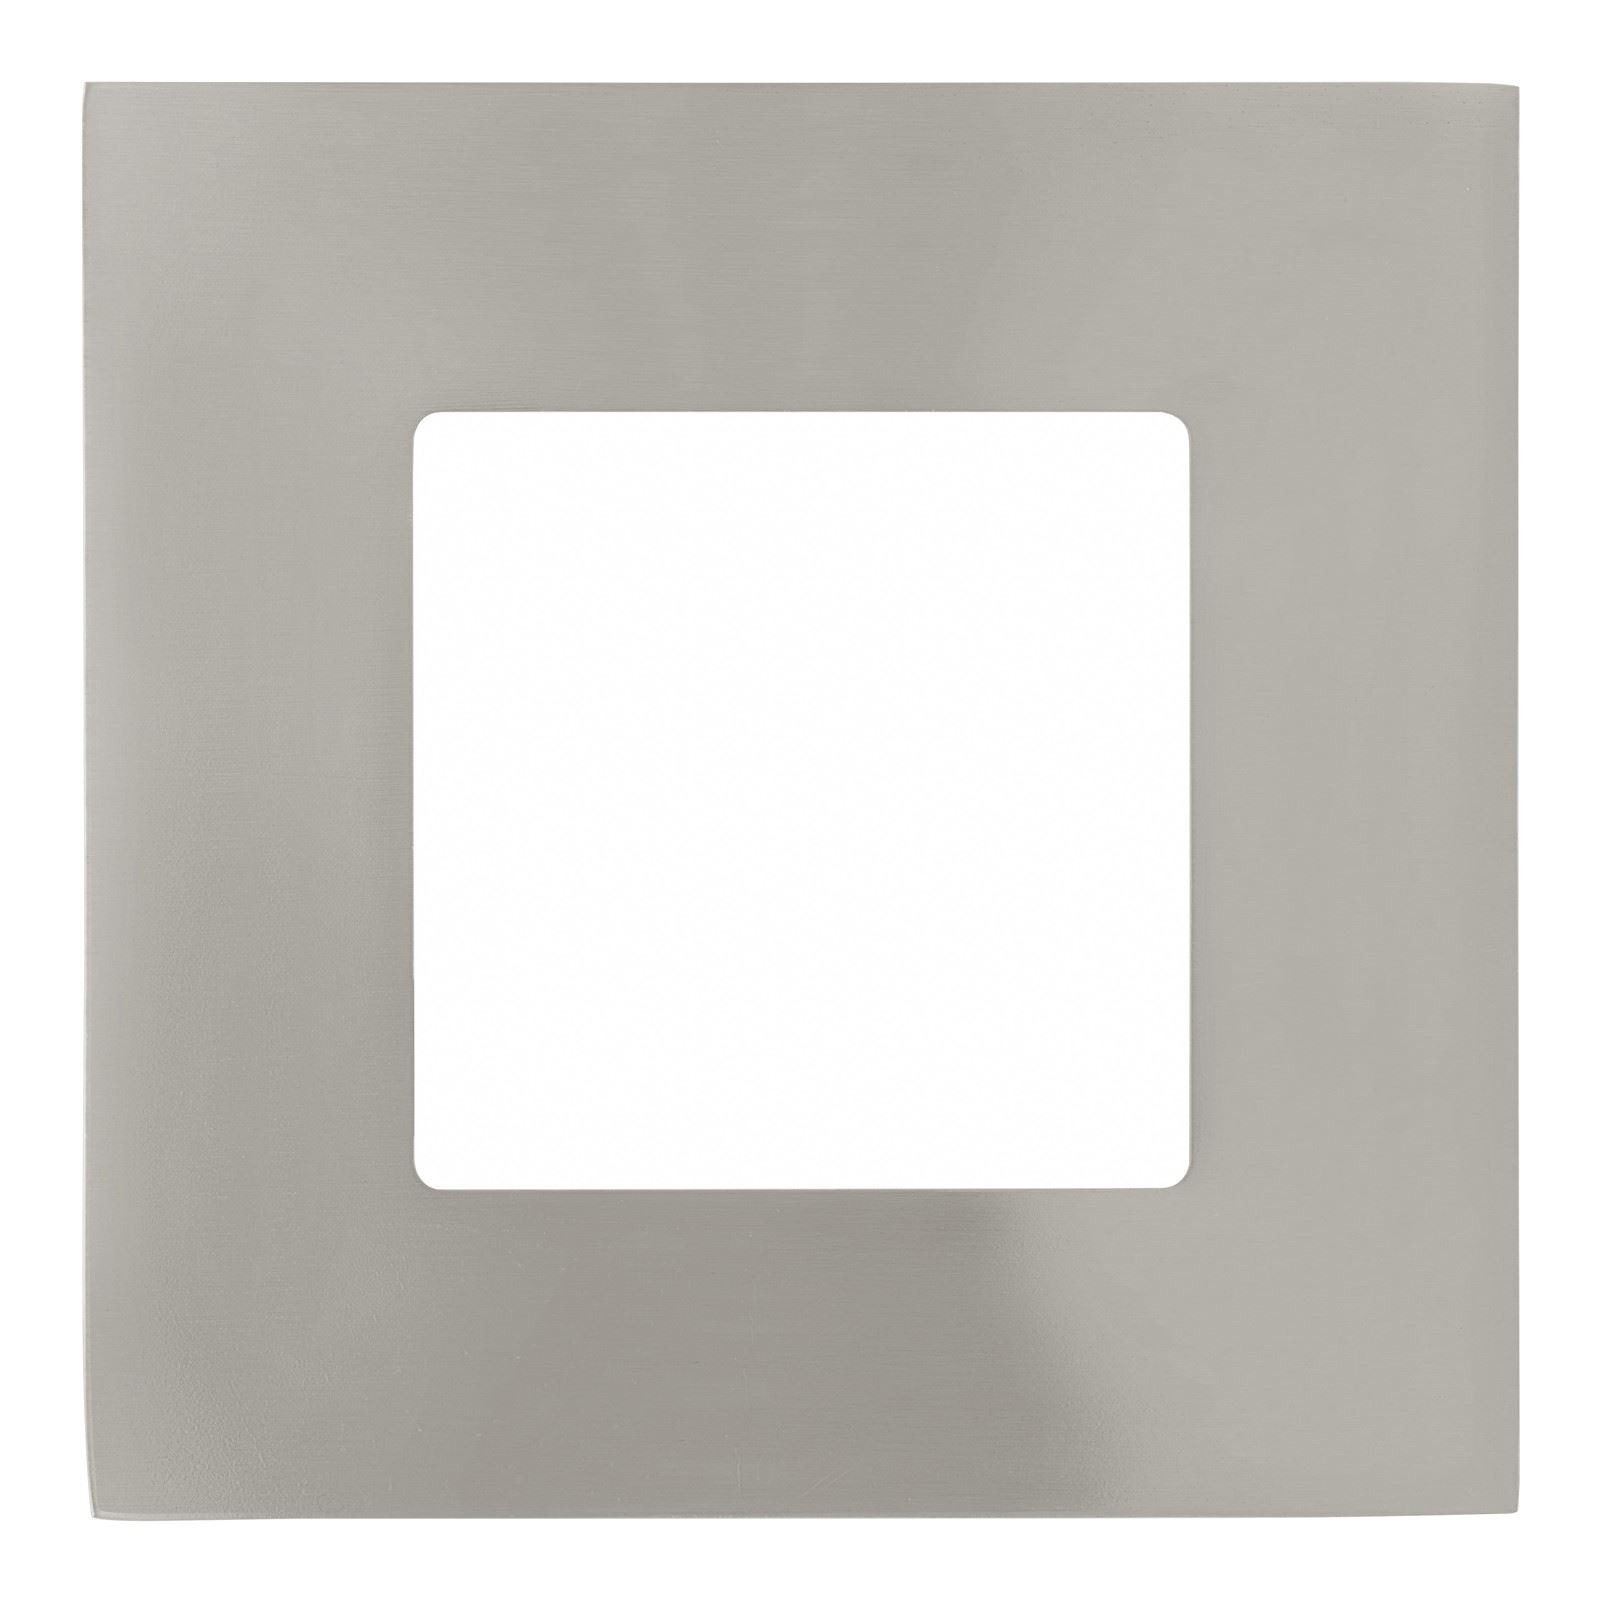 Fueva 3X Led Square Recessed Light Metal Cast Nickel Matt Plastic White Shade